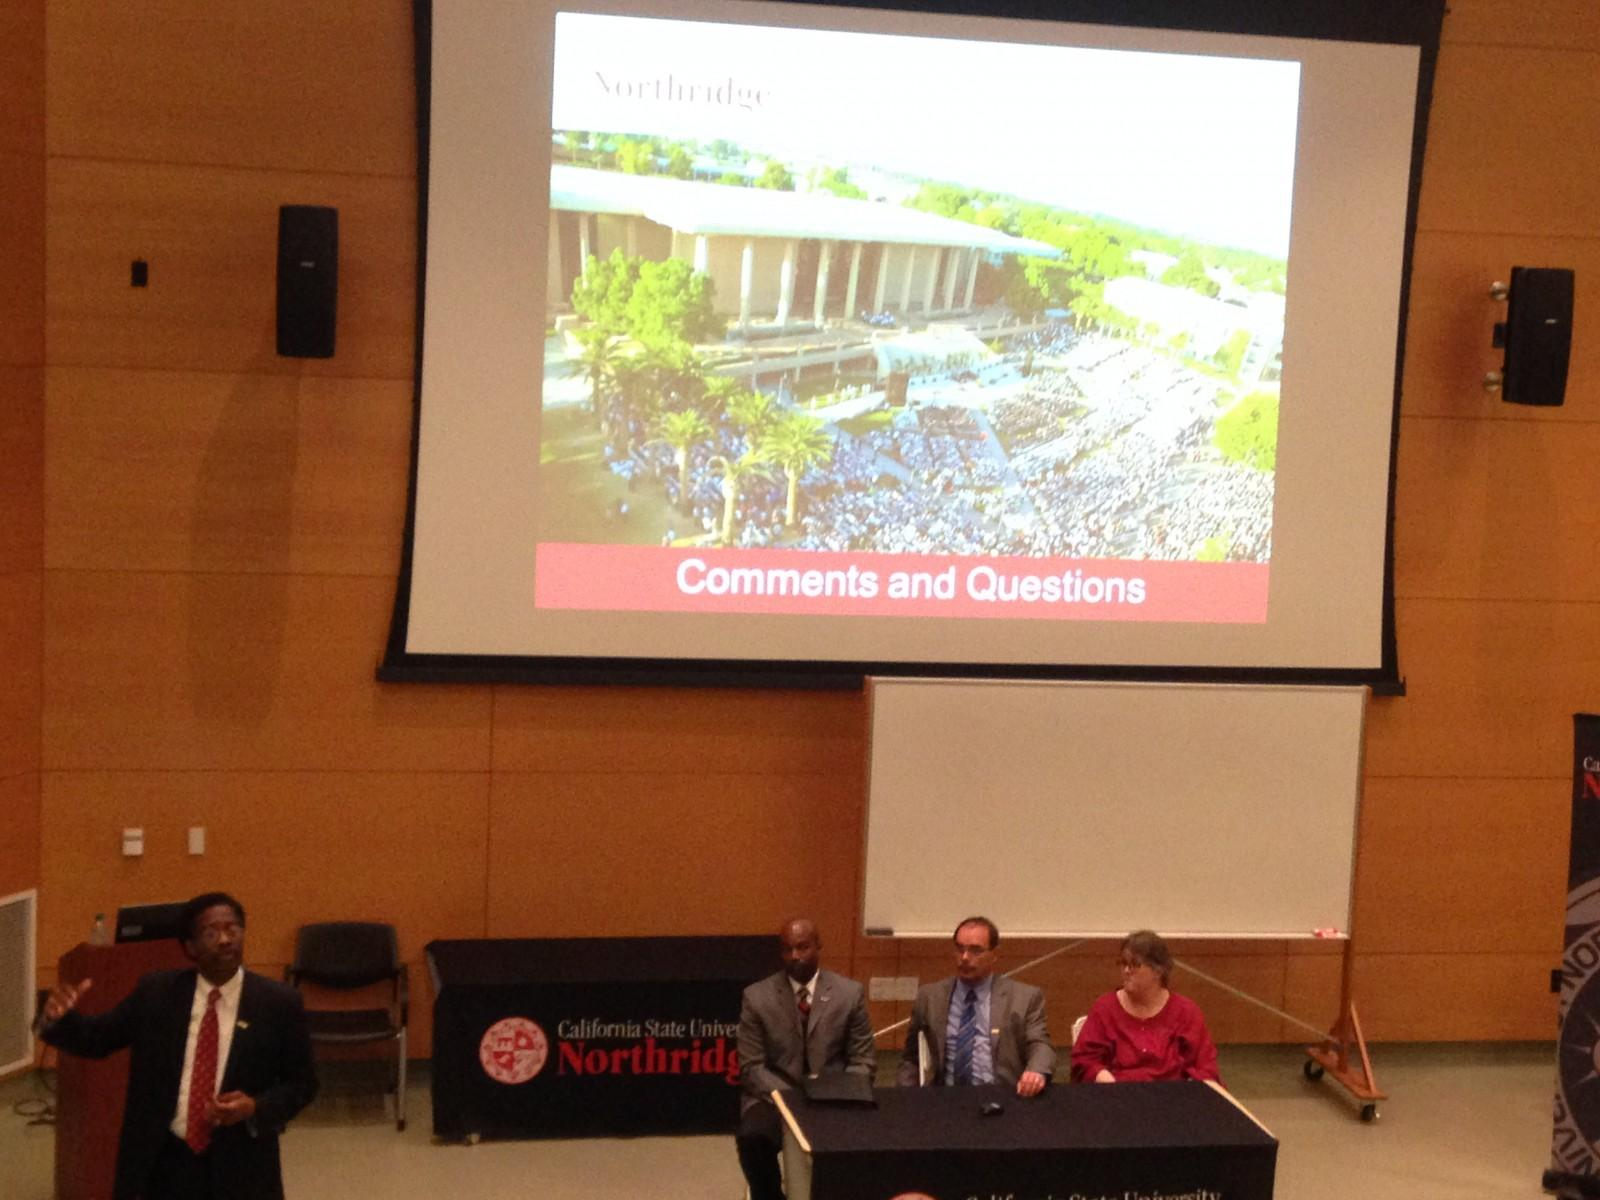 William Watkins, left, clarifies steps of impaction with Dwayne Cantrell, director of student outreach and recruitment, Vice Provost Micheal Neubauer, and Elizabeth Adams, associate vice president of undergraduate studies, at the final public community hearing at Moorpark College on March 11. Photo credit: Saffana Hijaz